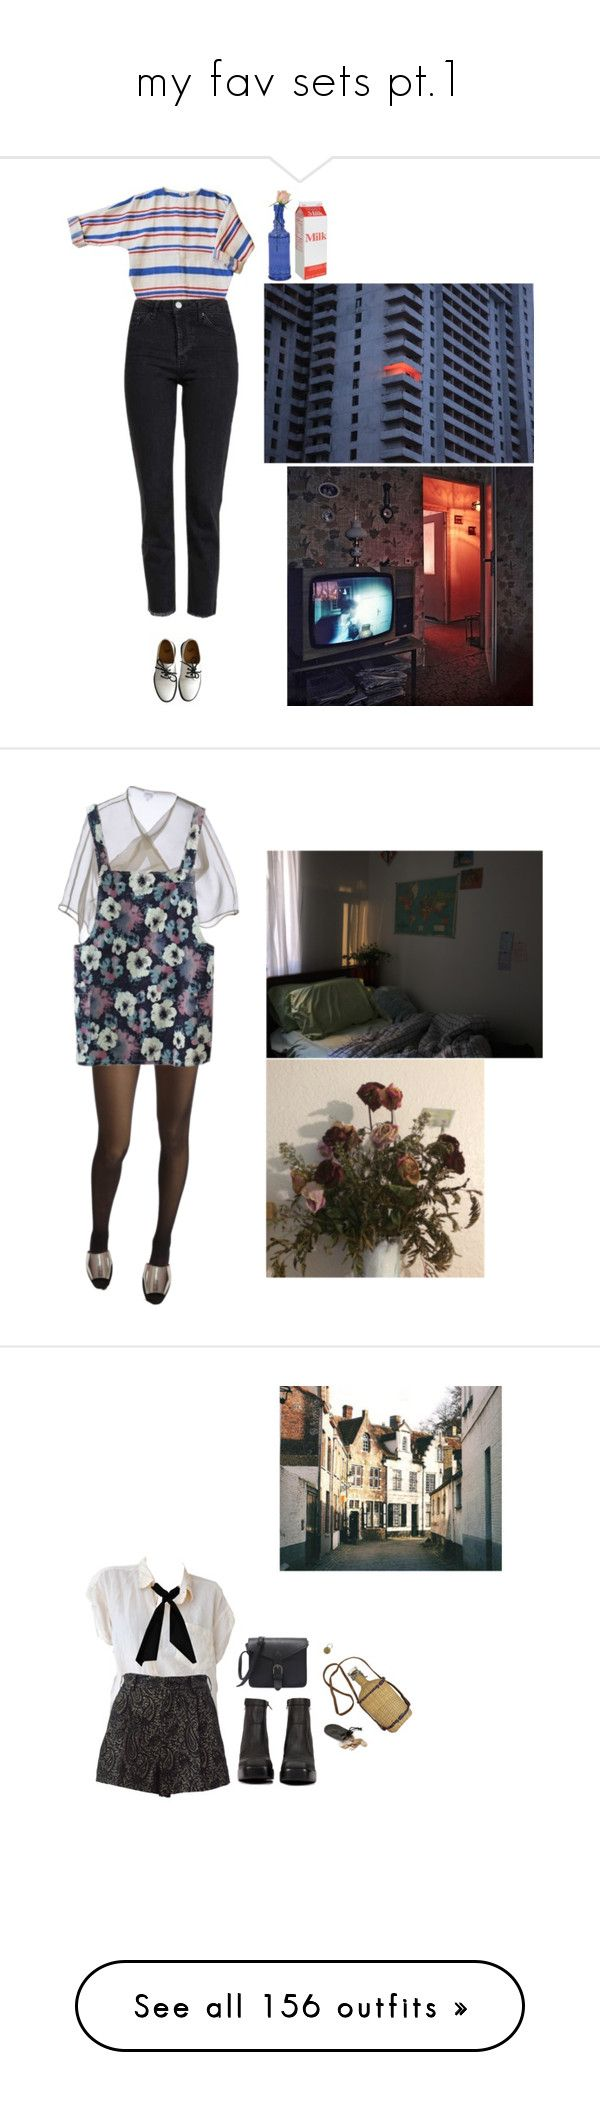 """""""my fav sets pt.1"""" by ellaaa-nielsen ❤ liked on Polyvore featuring Dr. Martens, Topshop, Armani Collezioni, Wolford, Maiyet, Jeffrey Campbell, donni charm, Ultimate, Jayson Home and Le Bourget"""